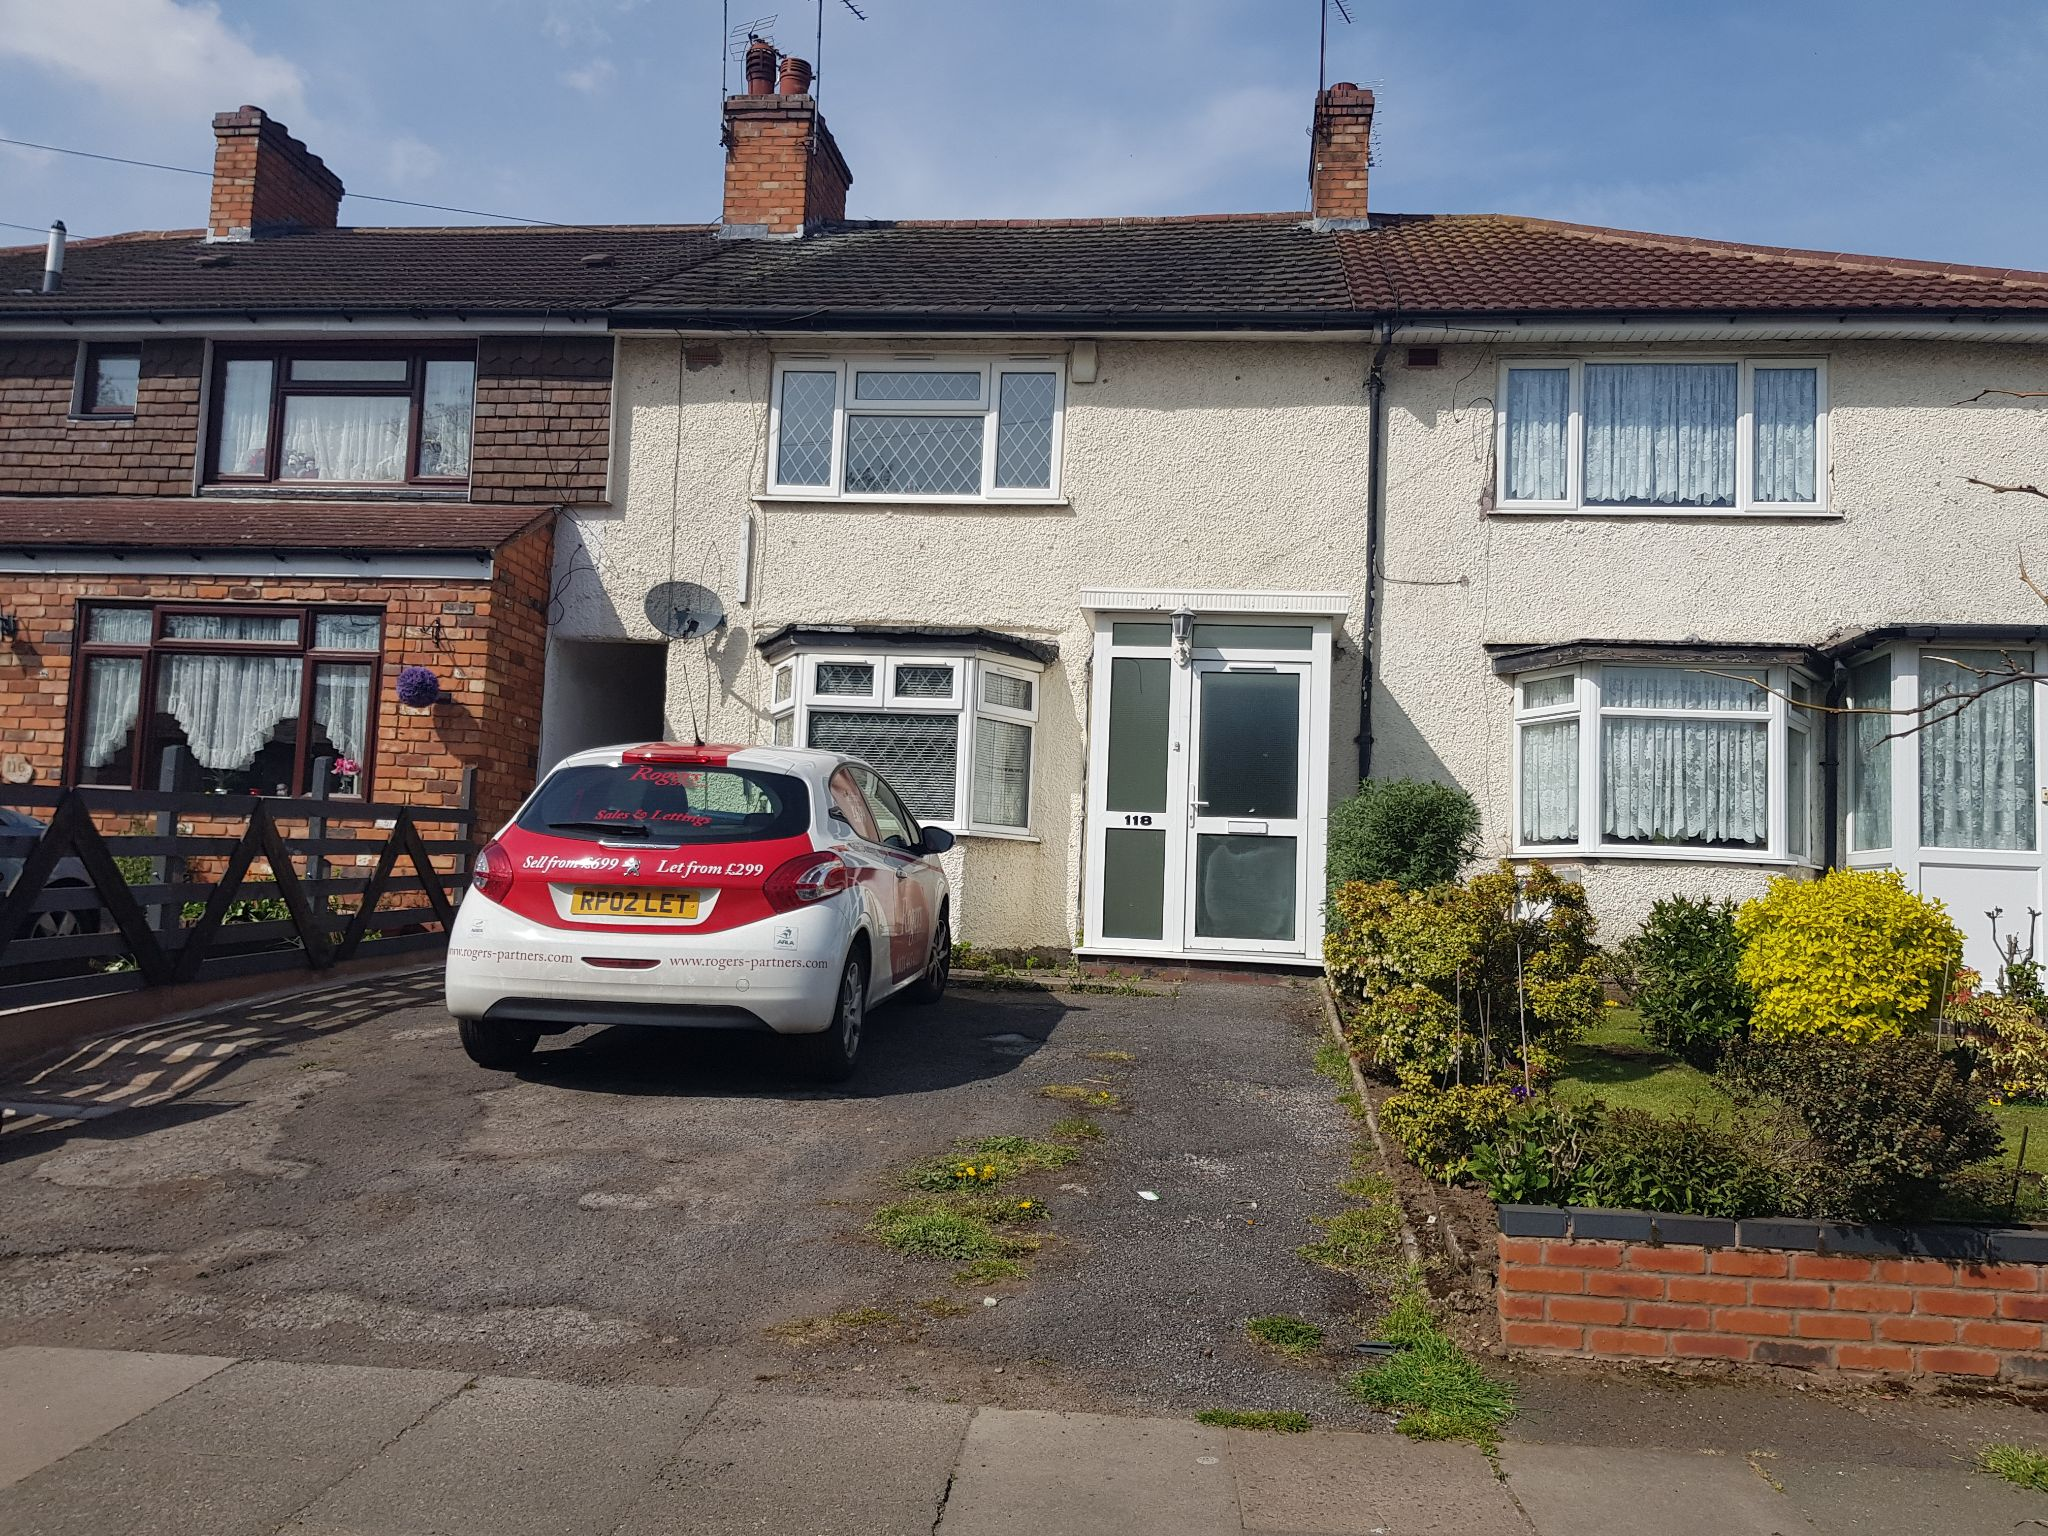 2 Bed Mid Terraced House To Rent - Photograph 1